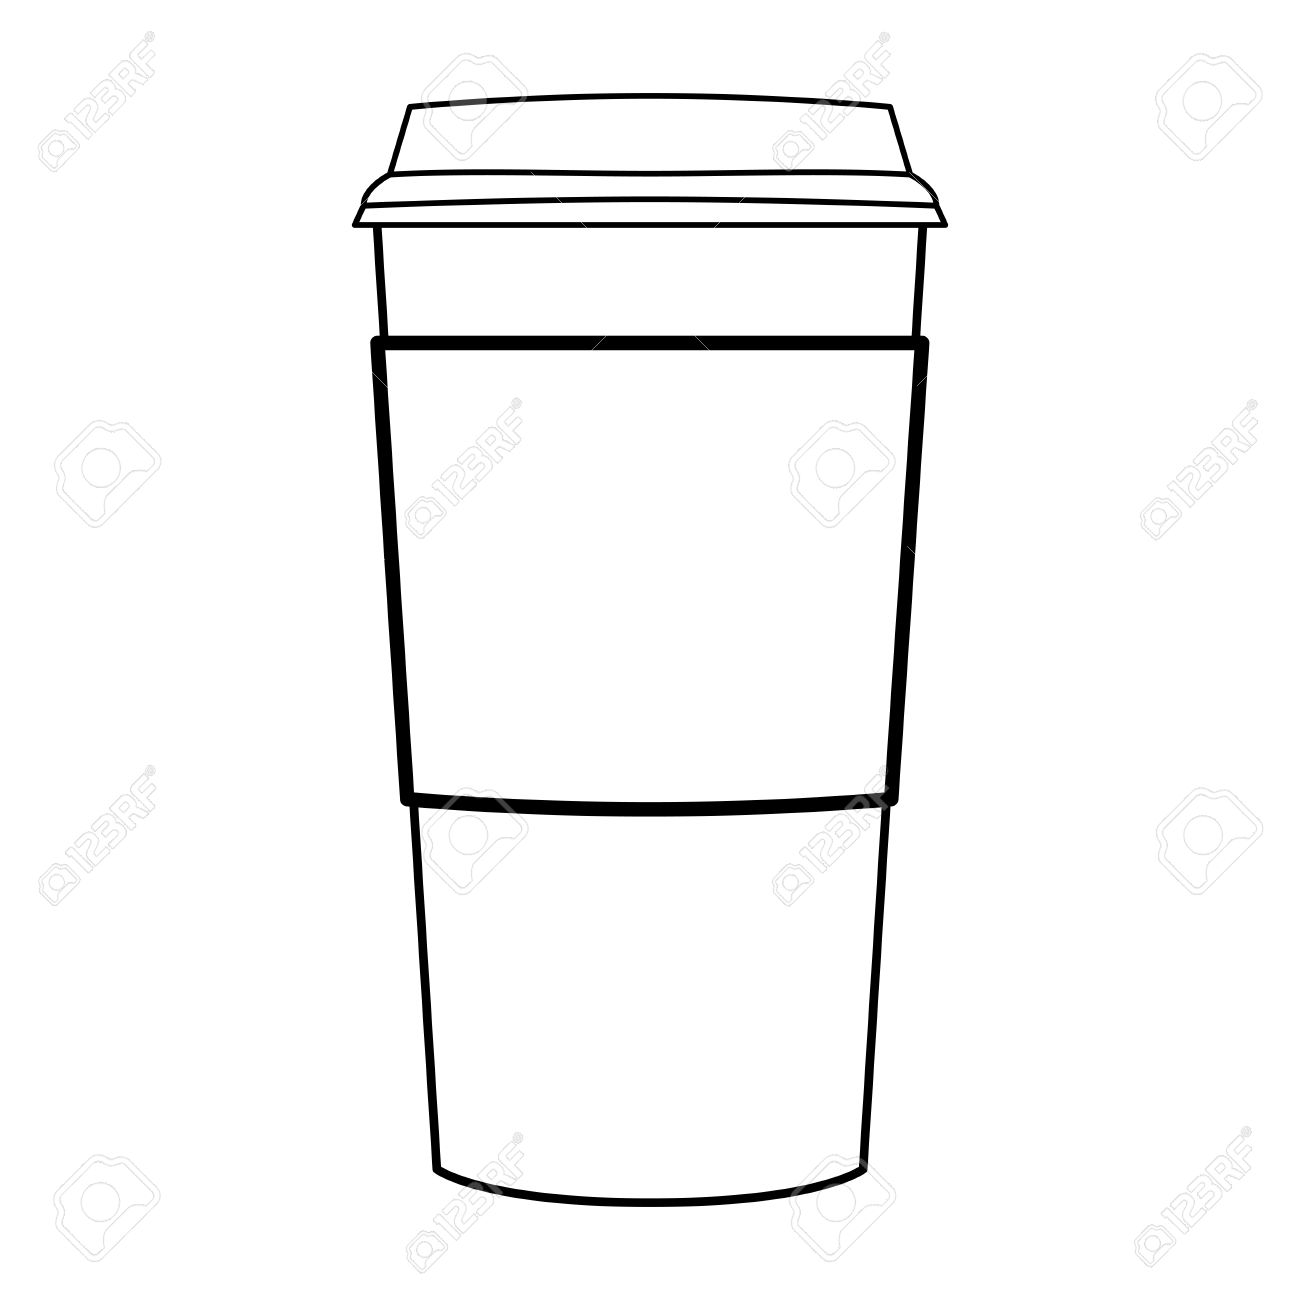 Starbucks Tumblr Drawing | Free download best Starbucks ... svg library download